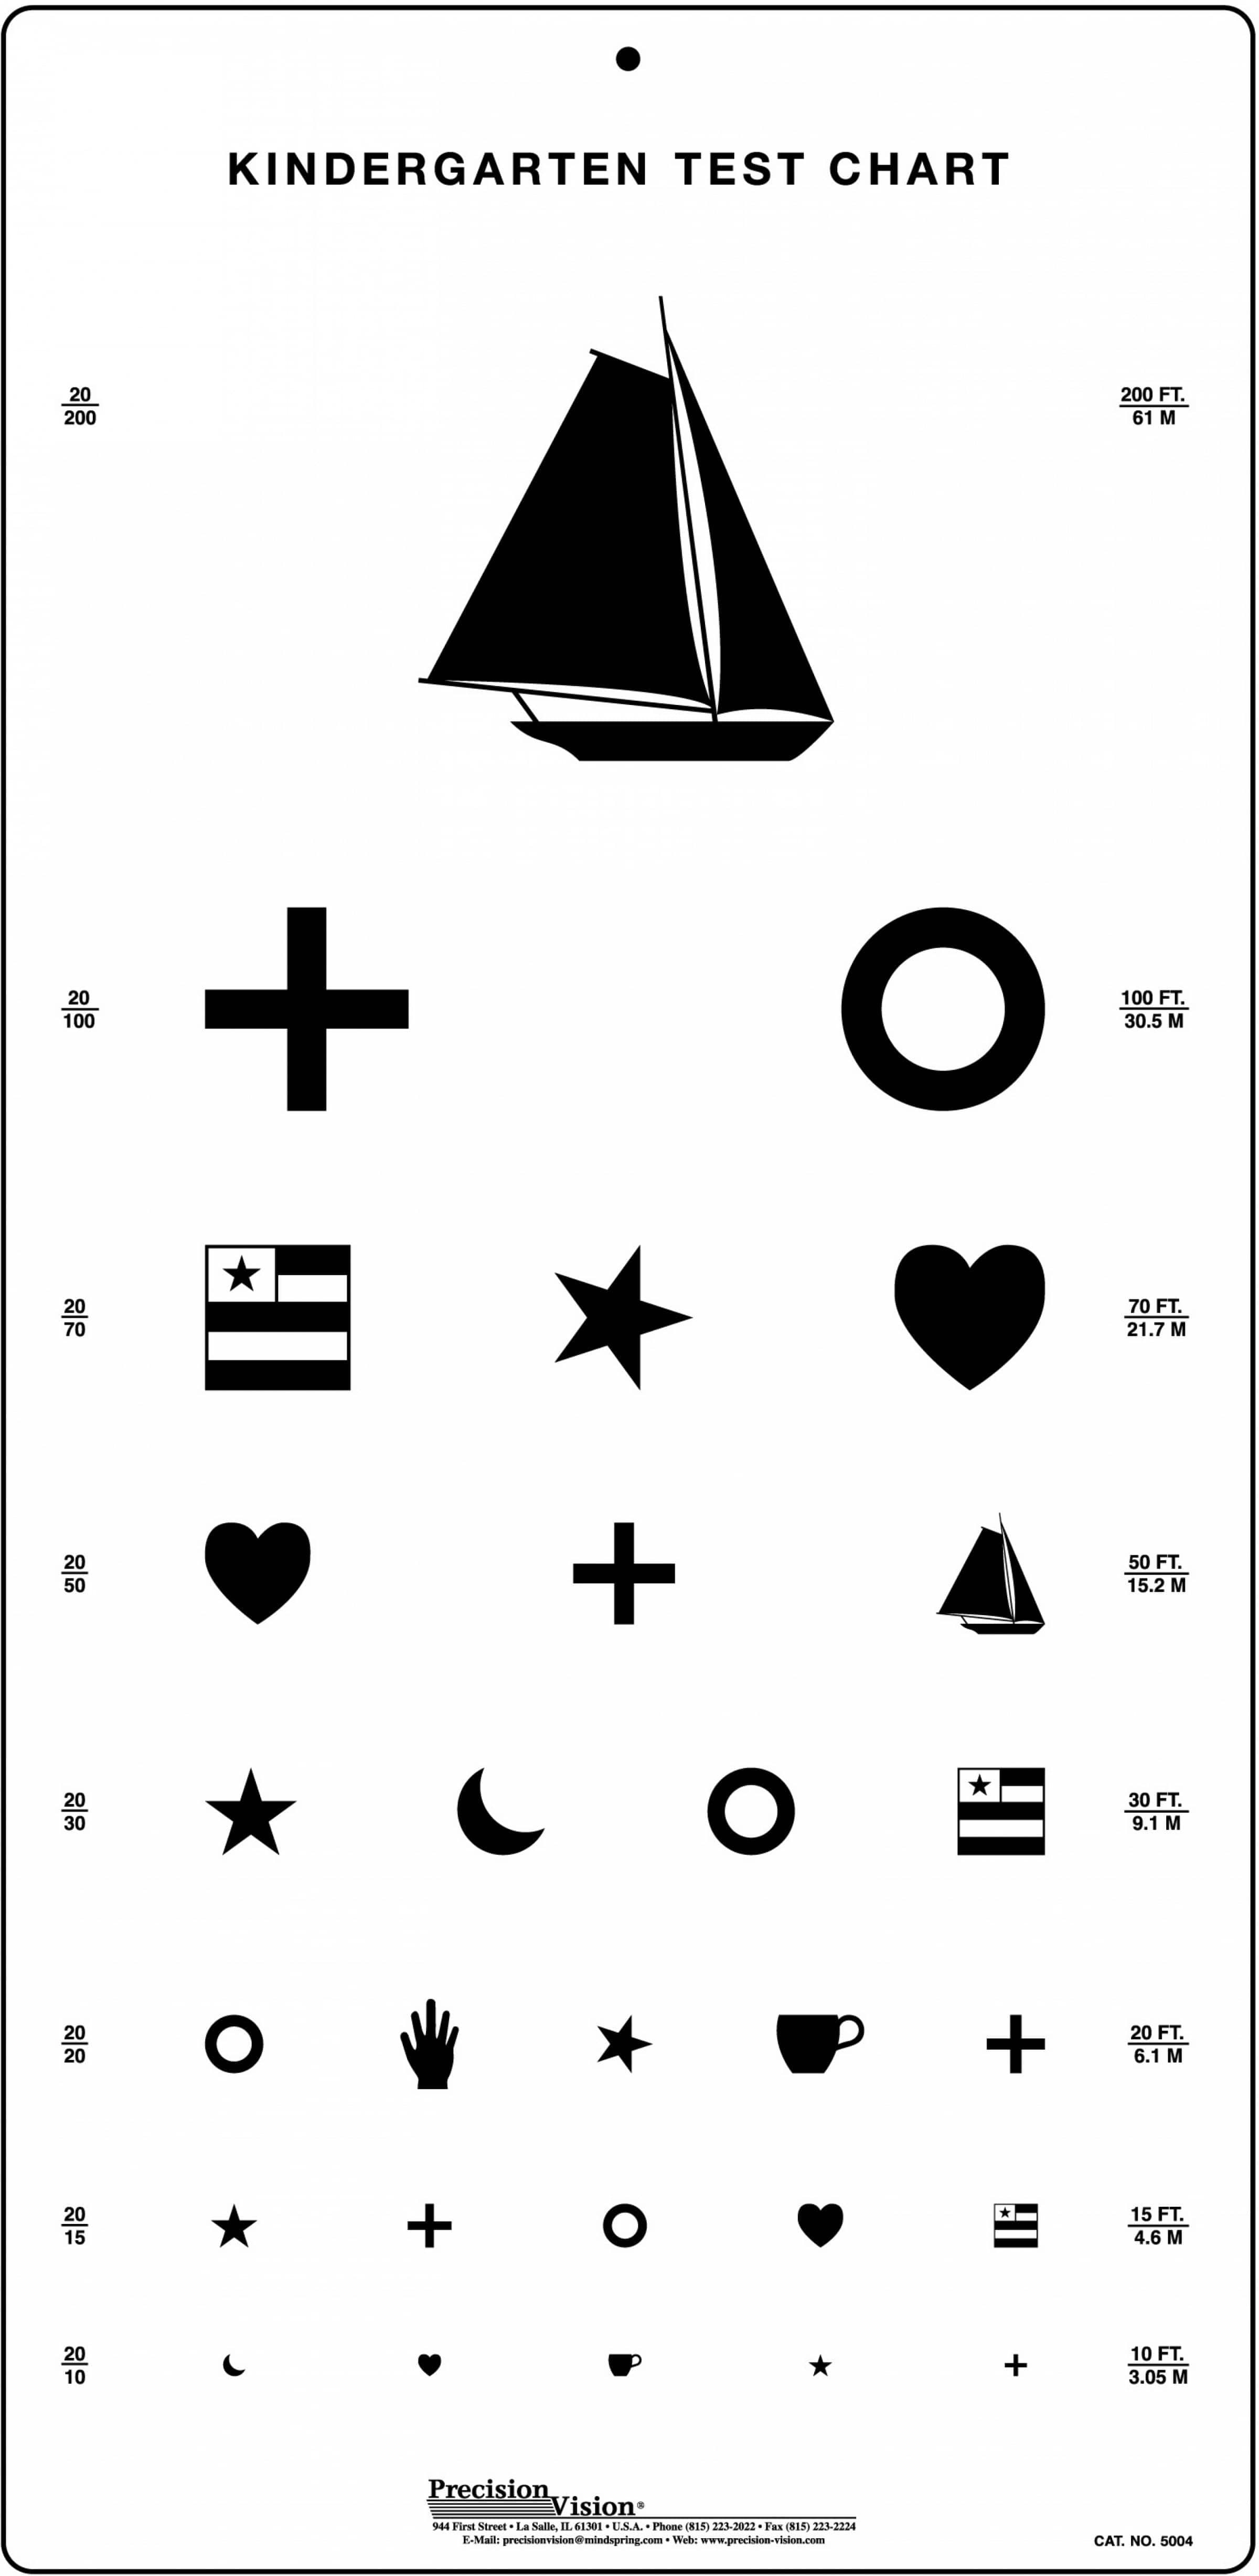 graphic about Eye Chart Printable identified as Kindergarten Eye Consider Chart